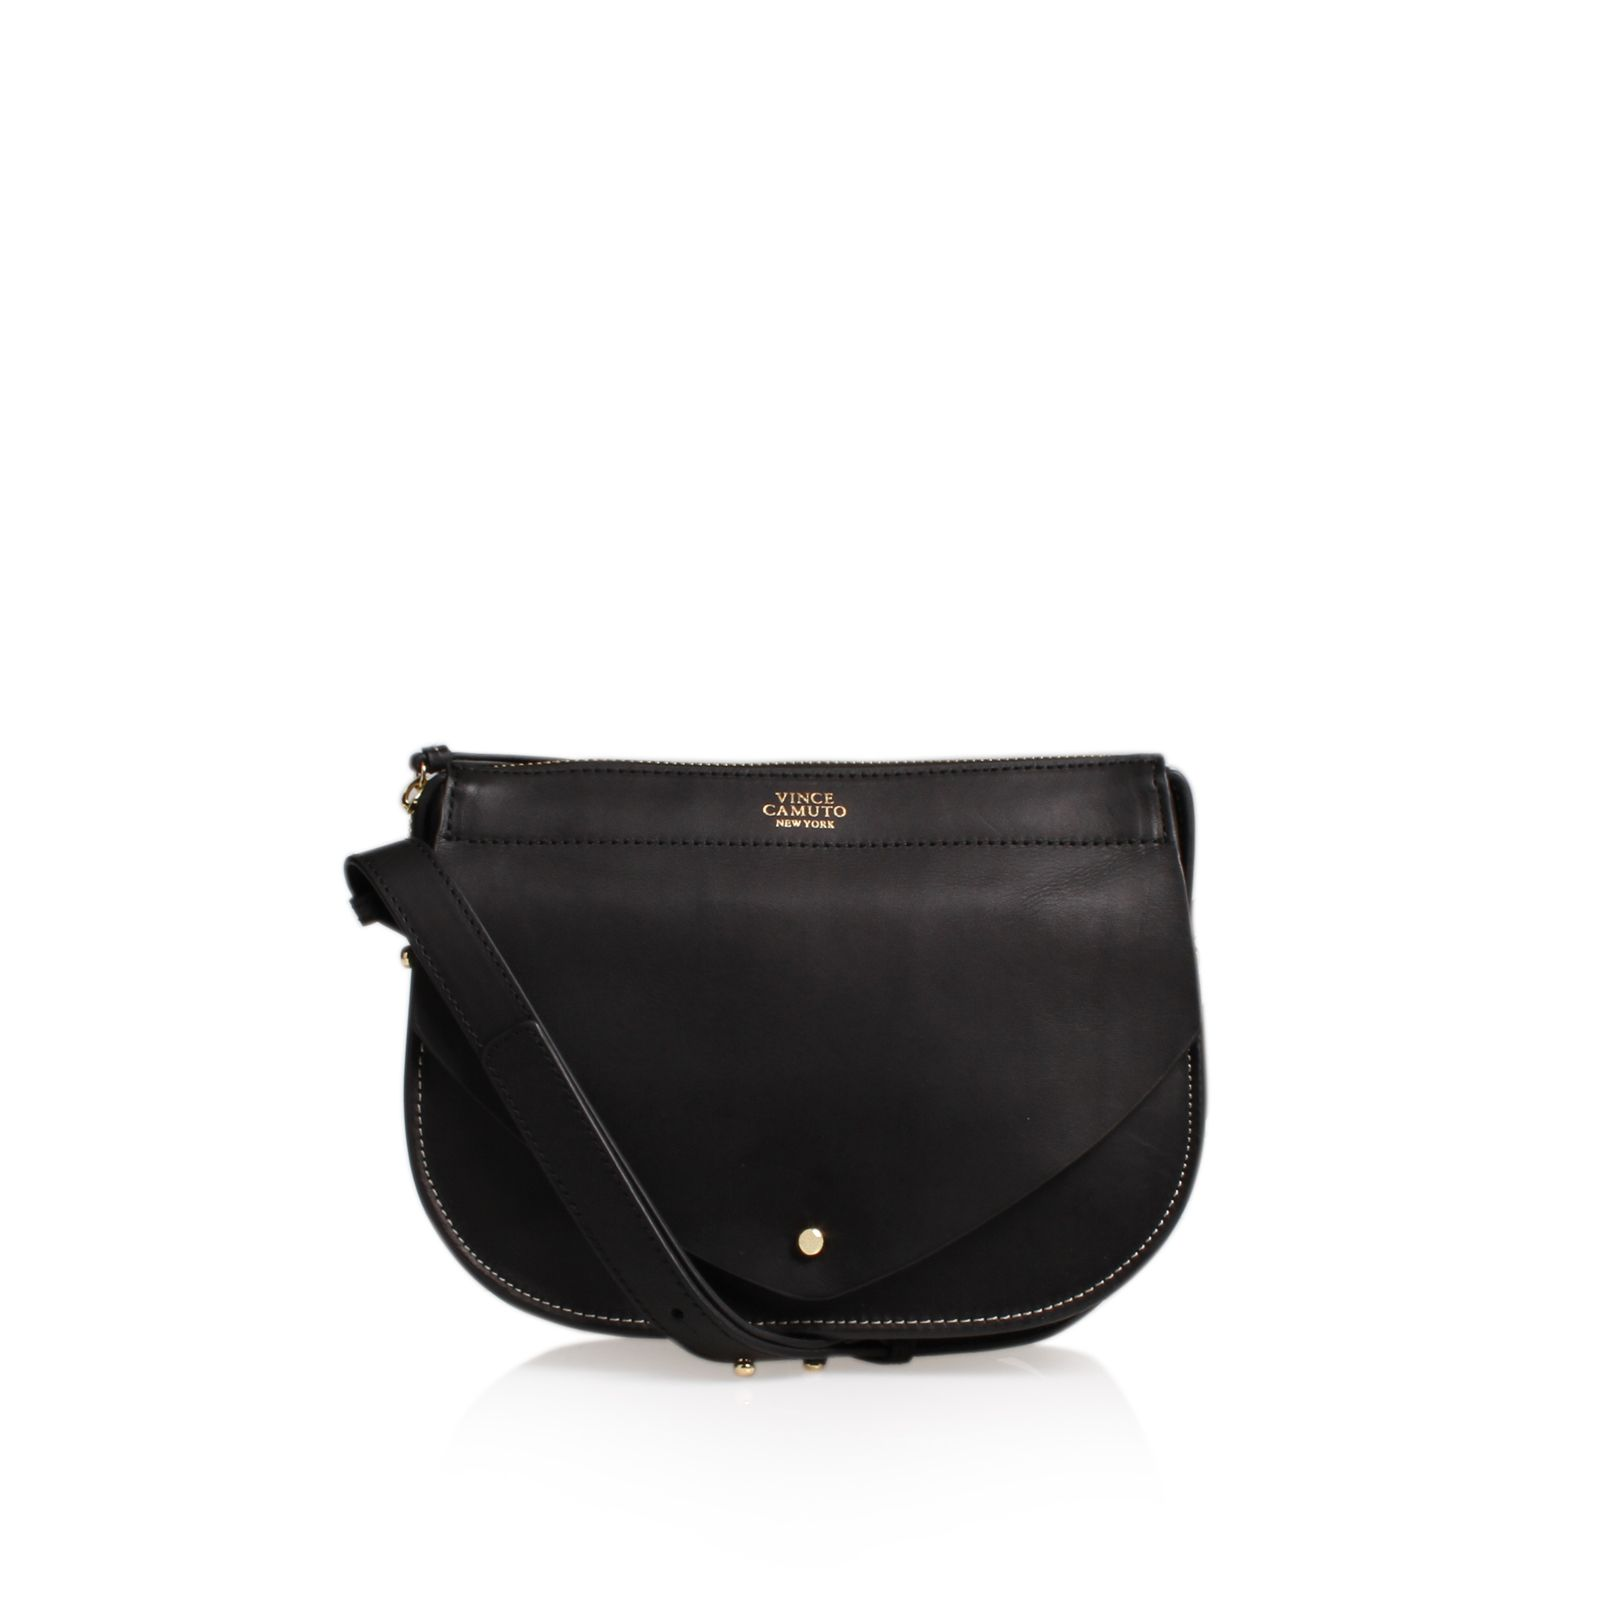 Vince Camuto Handbags + Save this search Vince Camuto Siny Hobo Bag $ $ Get a Sale Alert Free Shipping $99+ Code: SHIP99 at Off 5th Vince Camuto Textured Leather Tote $ $ Get a Sale Alert Vince Camuto Suede Hobo Bag - Bren $ $ Get a Sale Alert at QVC Vince.